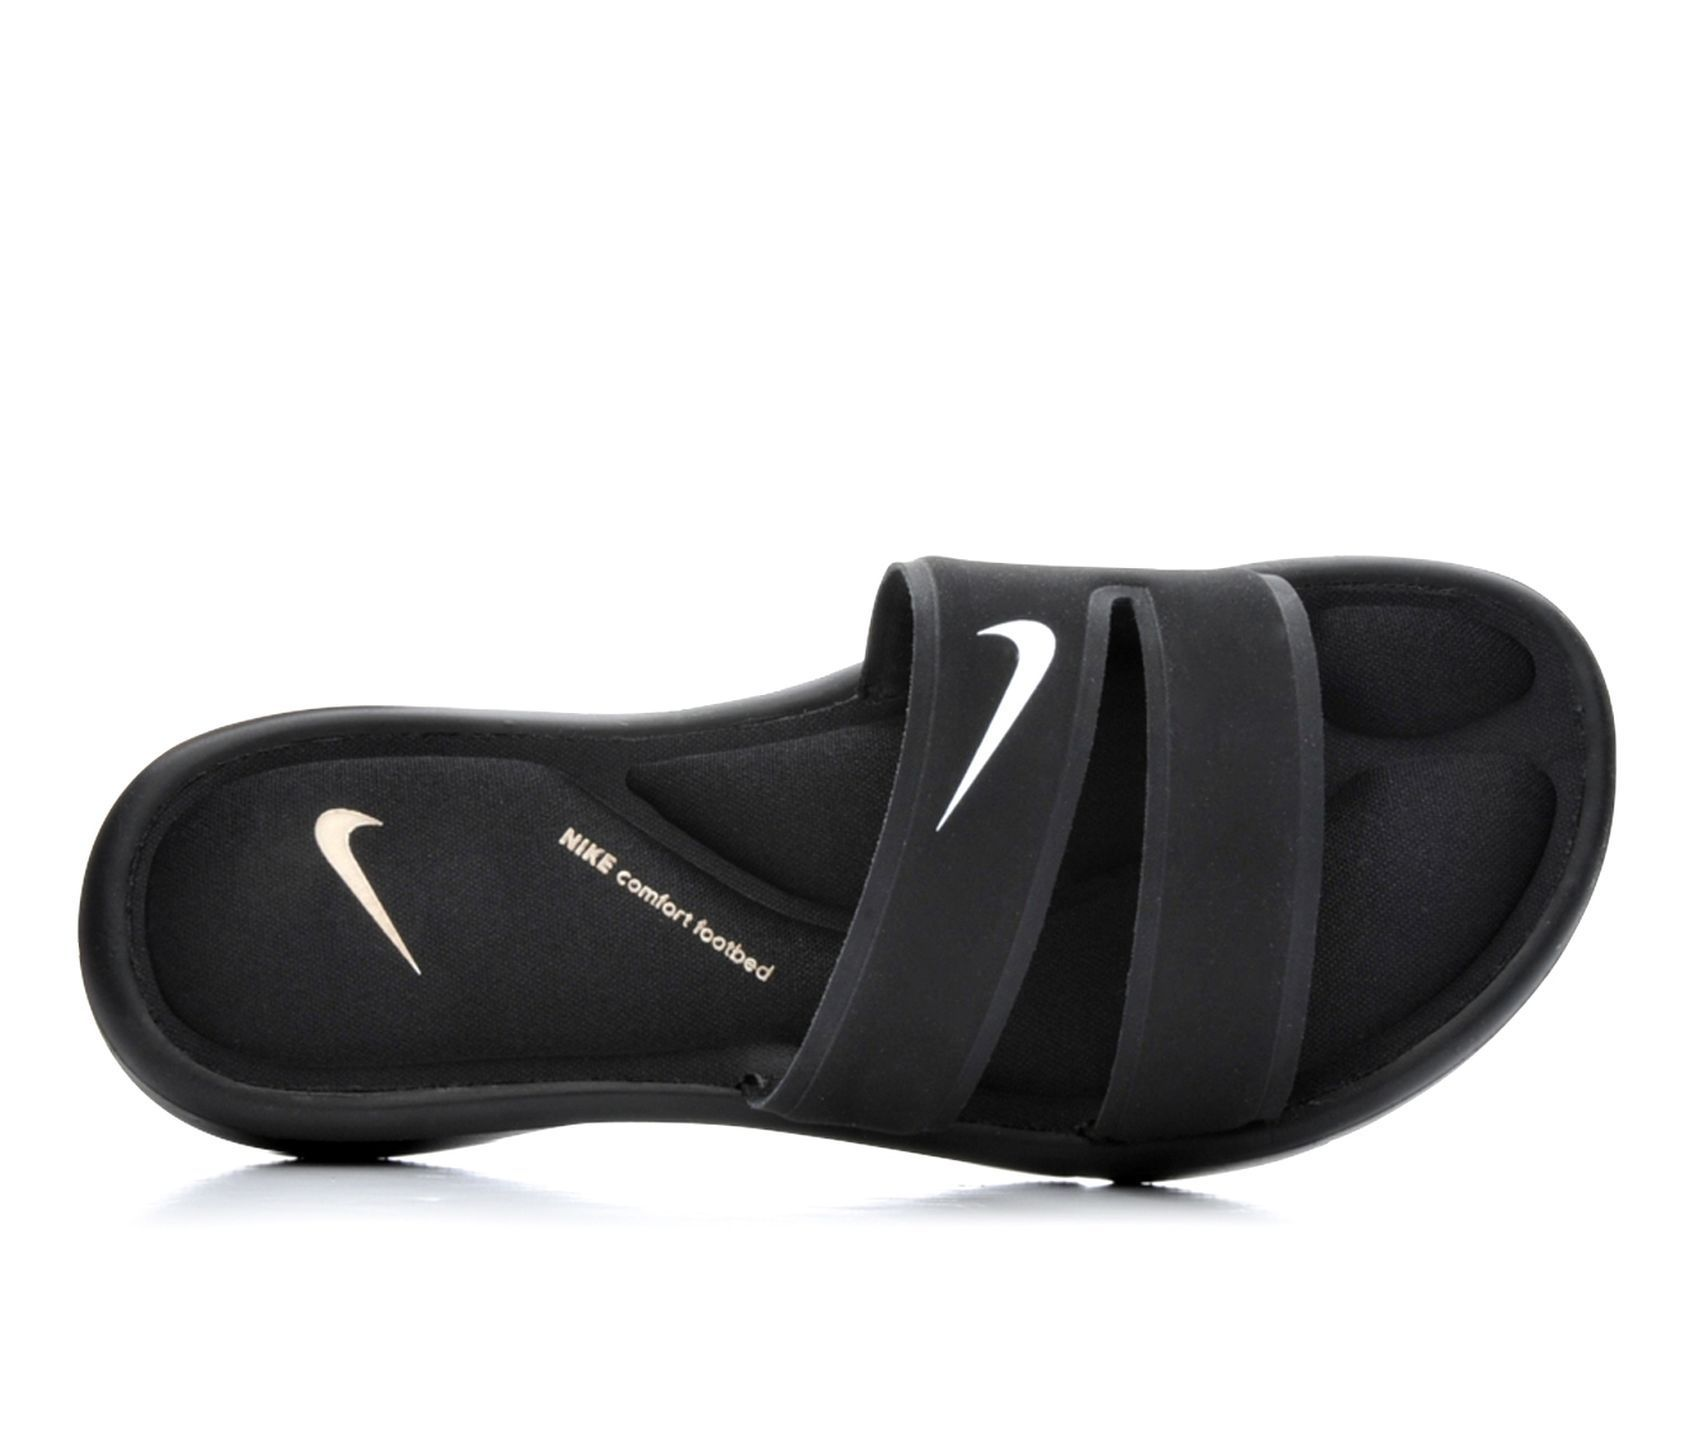 cb55906708eef1 Women s Nike Ultra Comfort Slide Sport Sandals